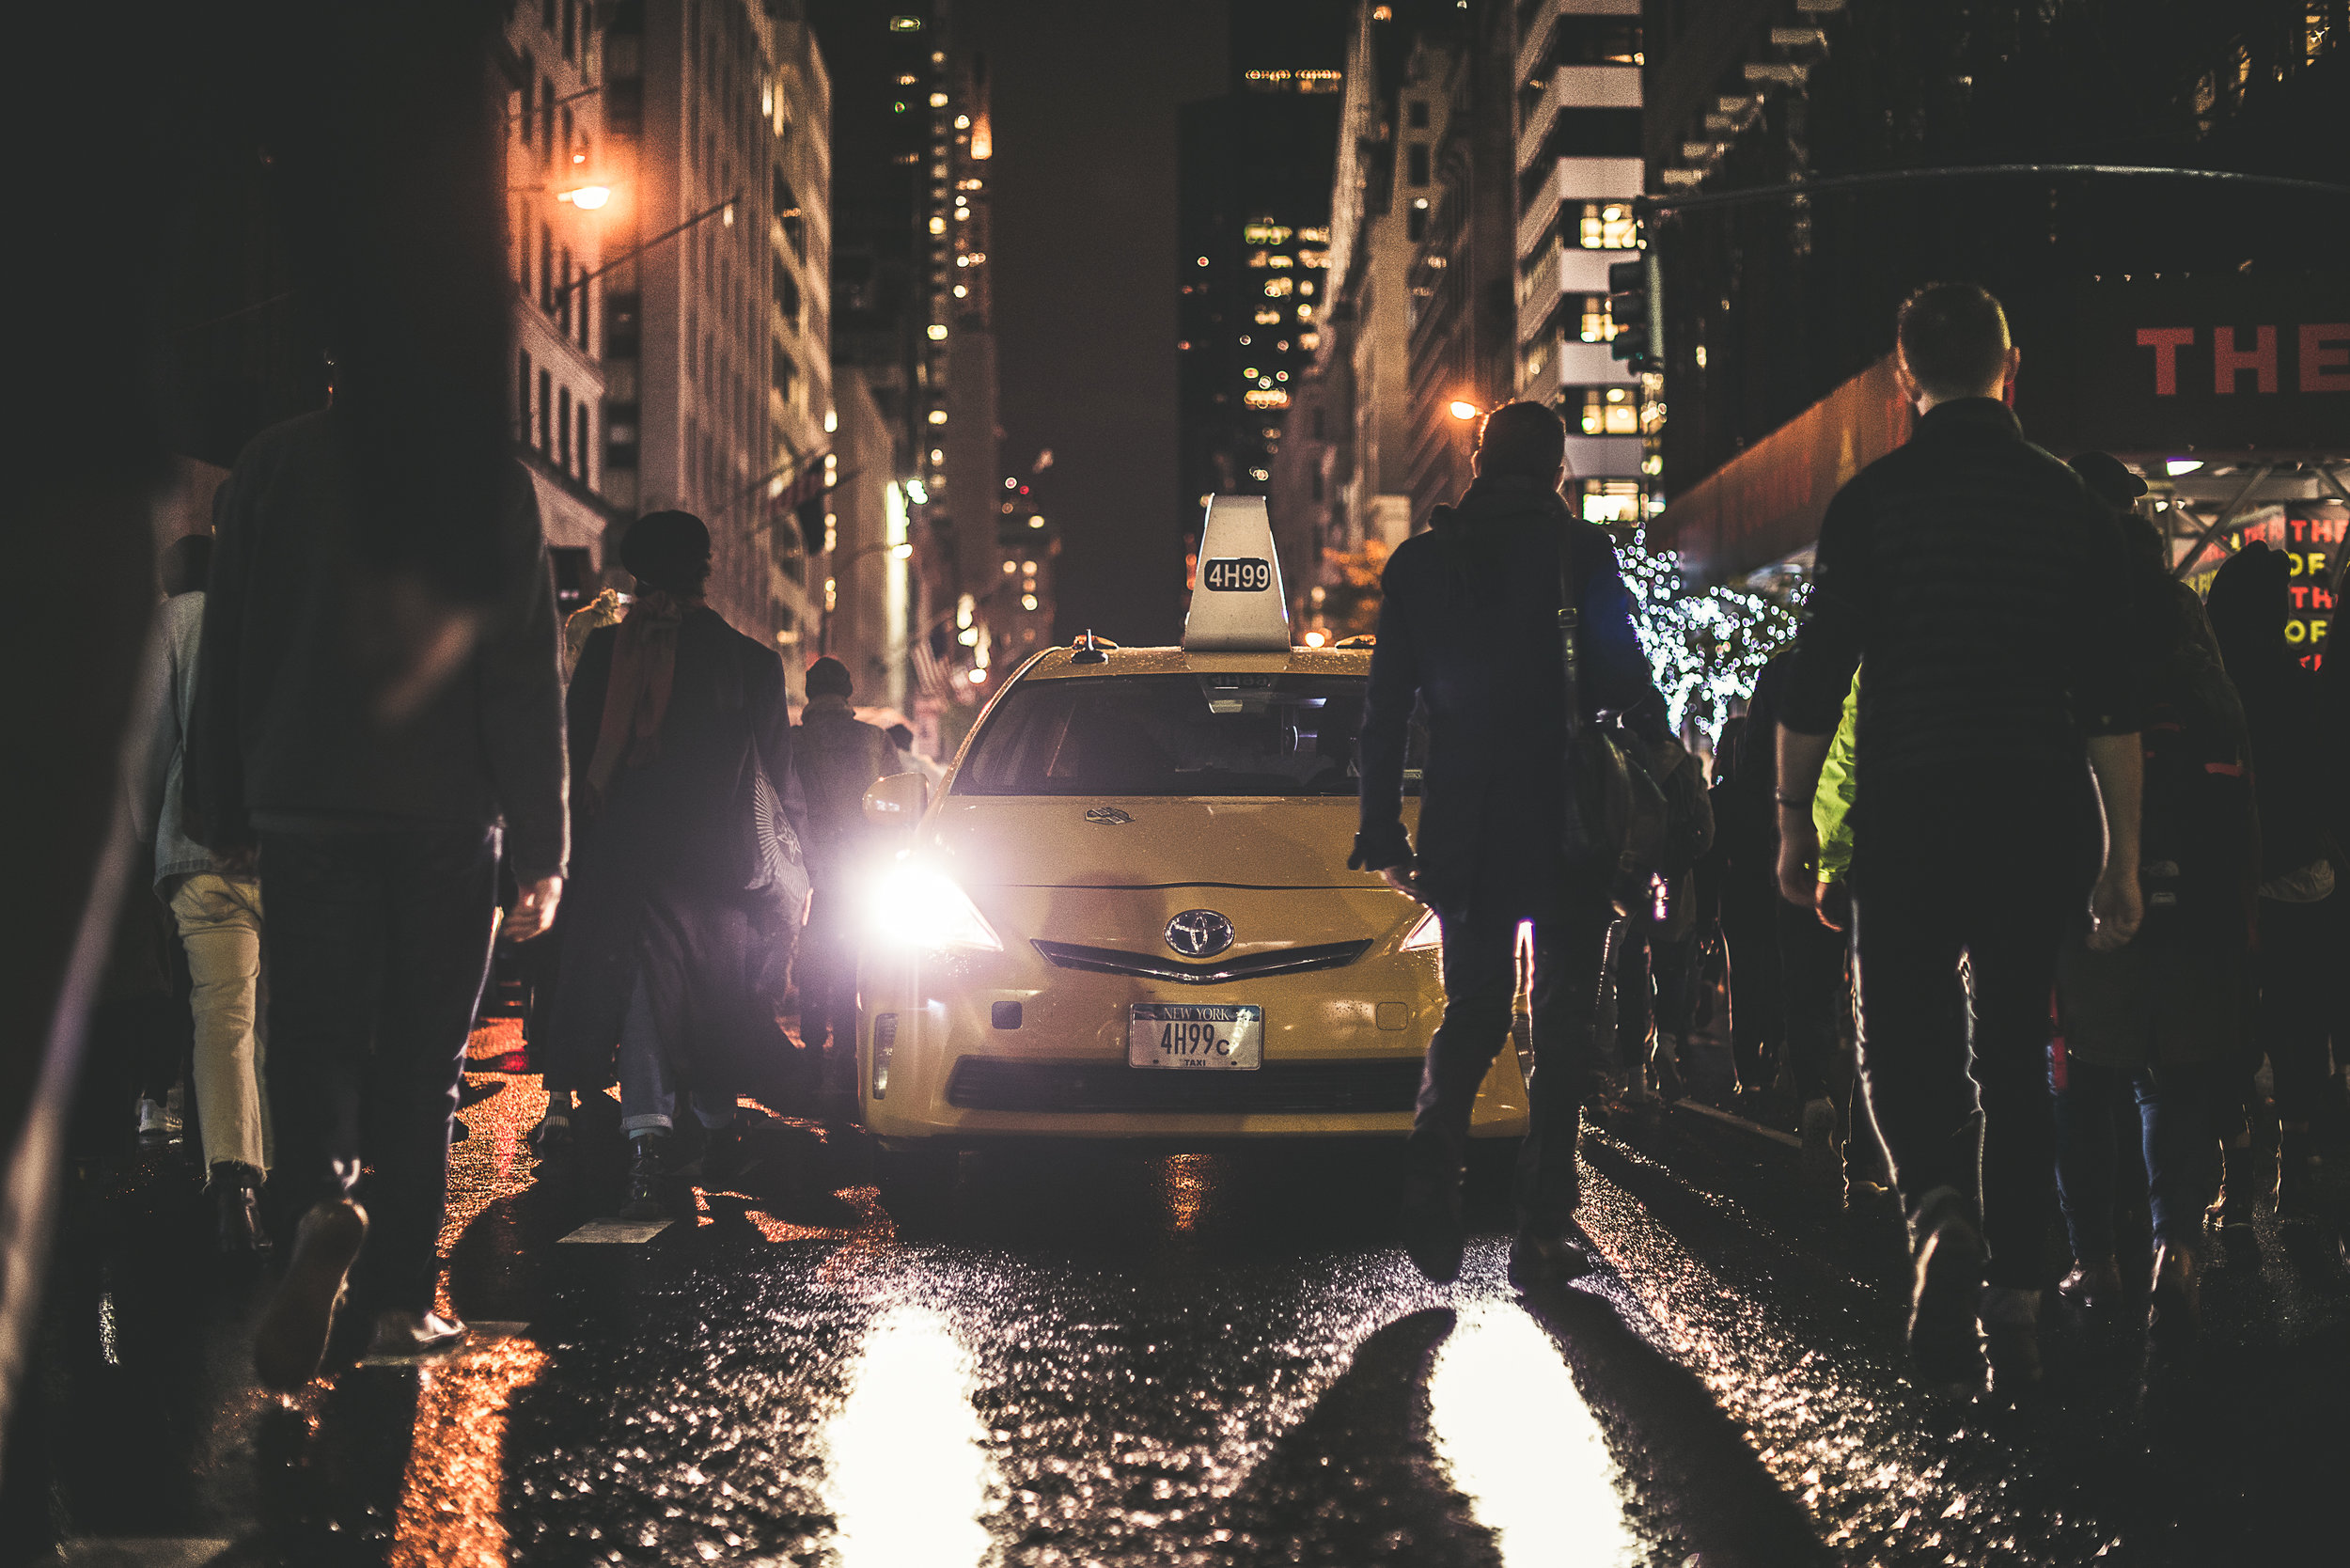 """A Taxi stuck in the middle of one of the busiest cities in the World; New York City on 11/9/16 during a protest. #Allthingsmatter  """"When you hit the road, you always assume that you're going to reach your destination. You are so sure about where you're heading in your life that you don't pay attention the little changes. Little changes can make a huge difference. Sometimes they keep you from arriving in time to work but sometimes they keep you from reaching your destination at all.""""  - Eana Georgiana Cătălina"""